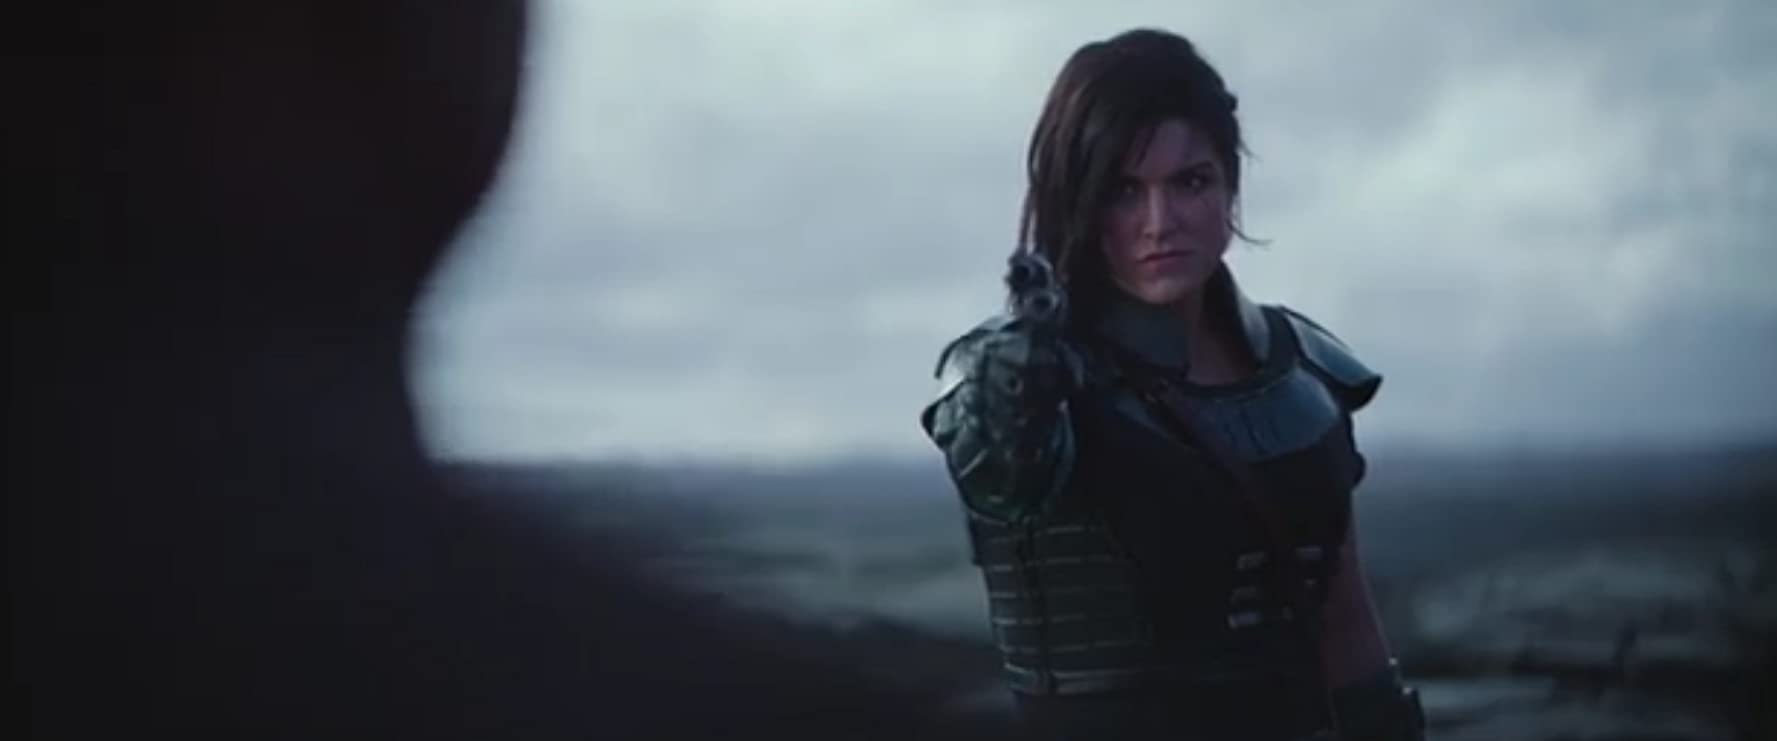 Gina Carano in The Mandalorian (2019)